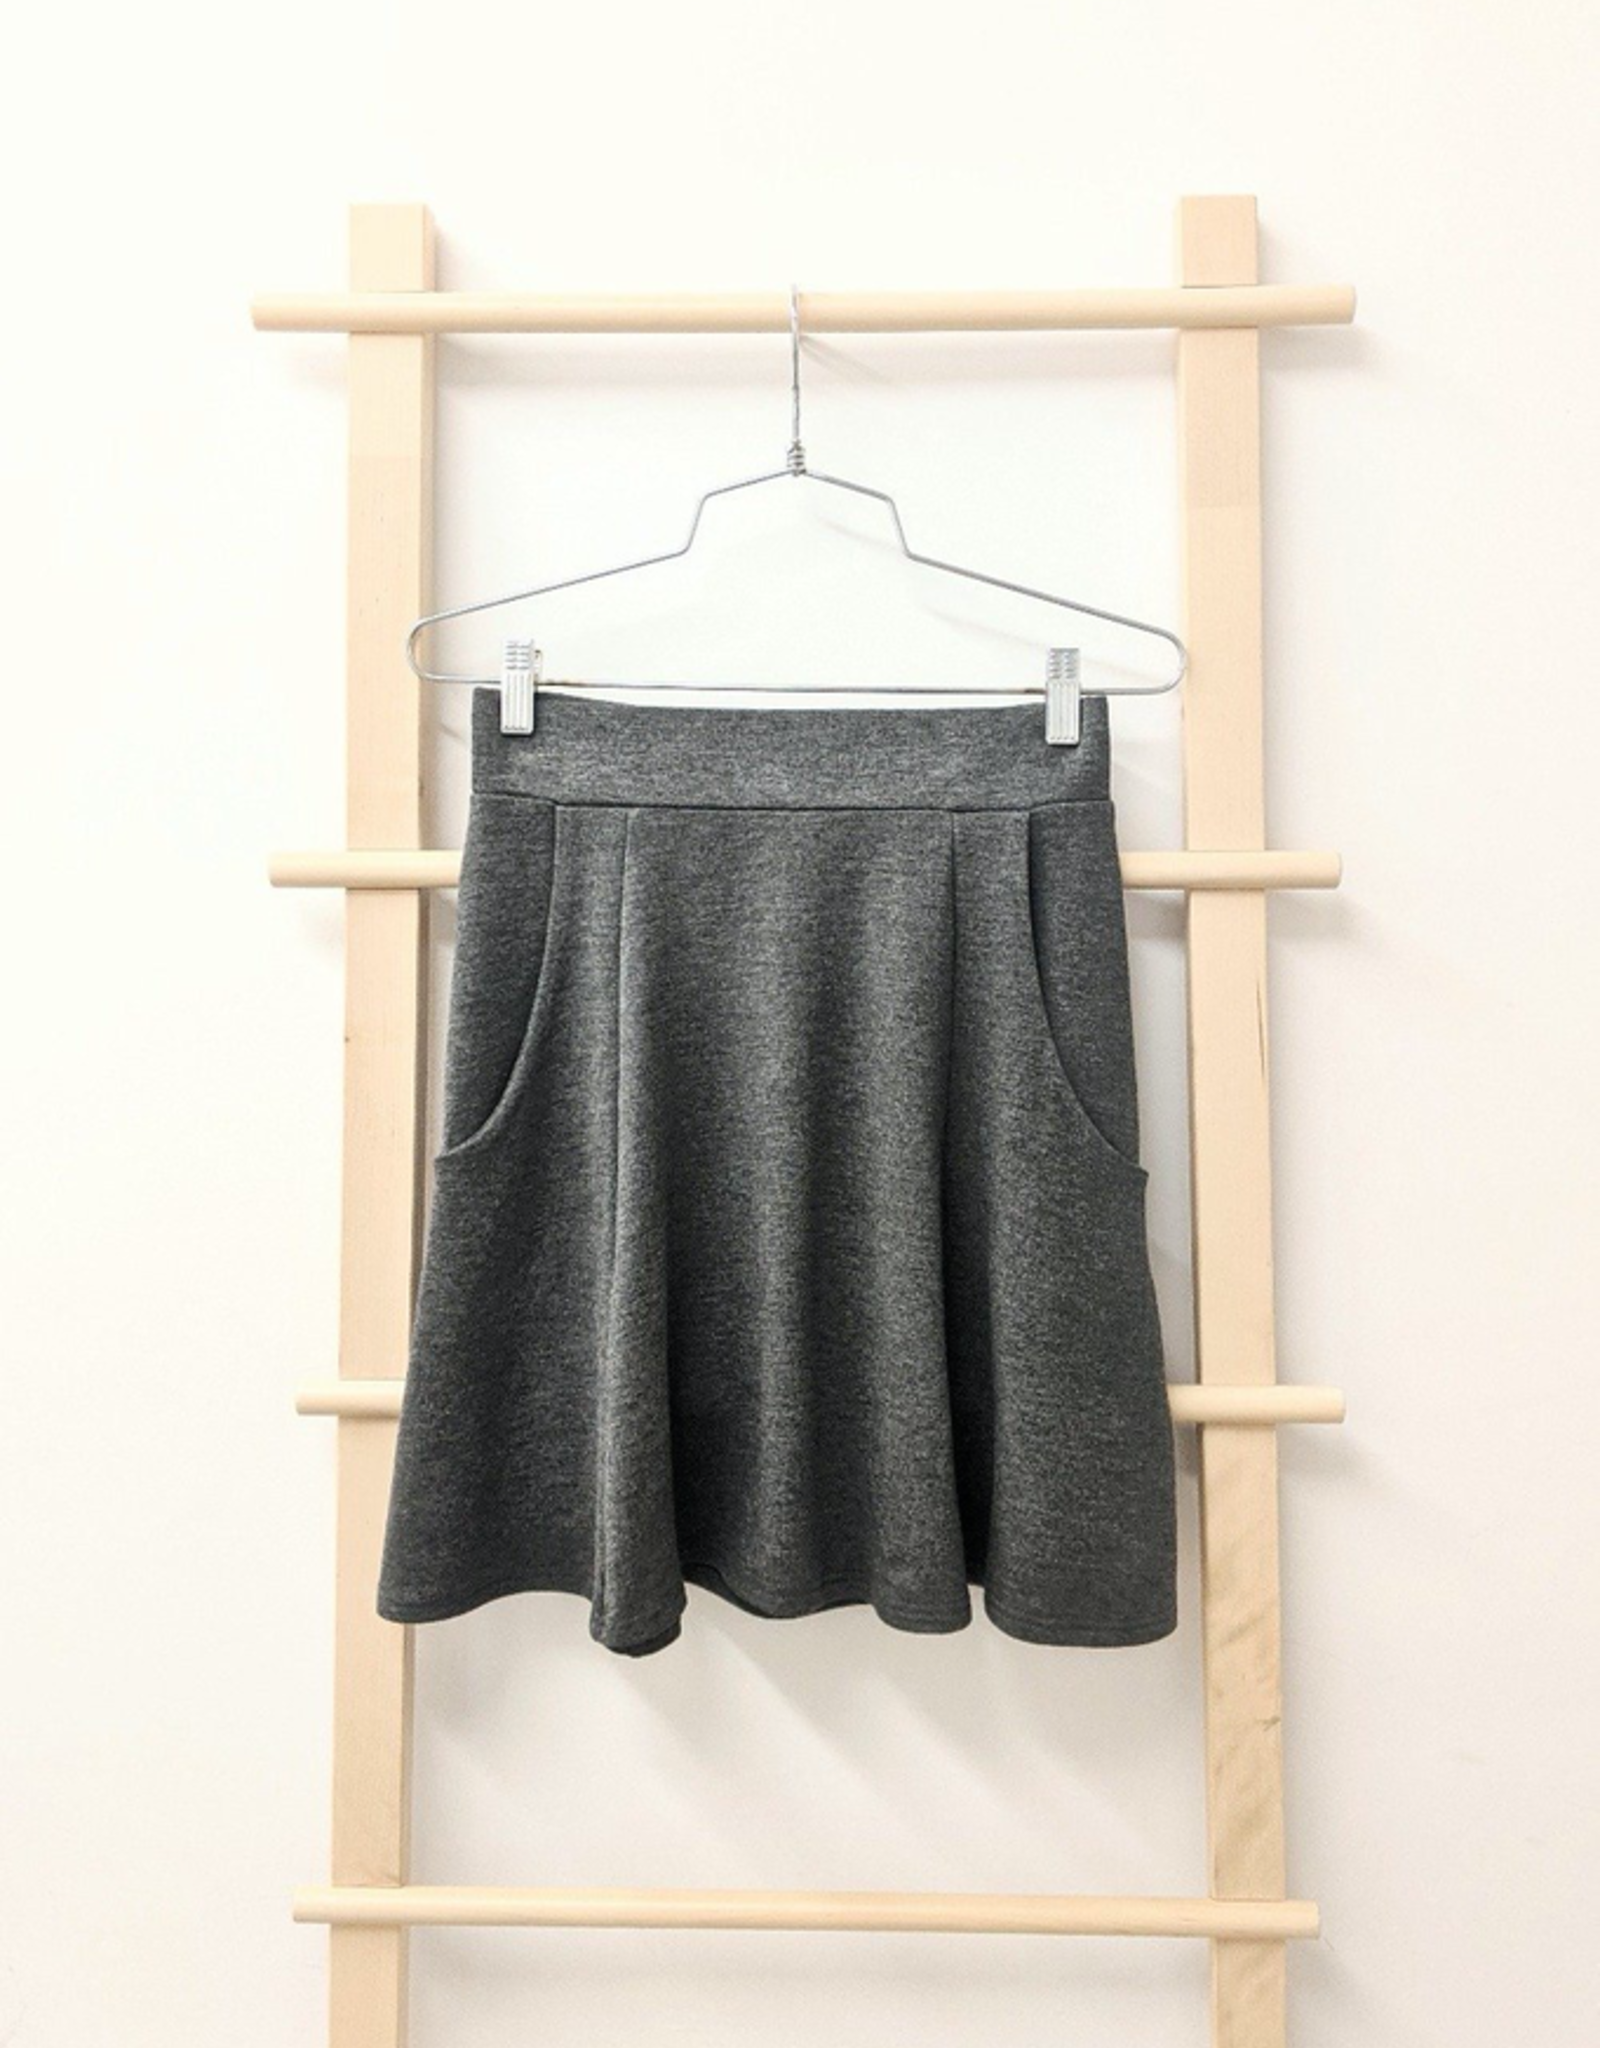 Photomaton Skirt - multiple options